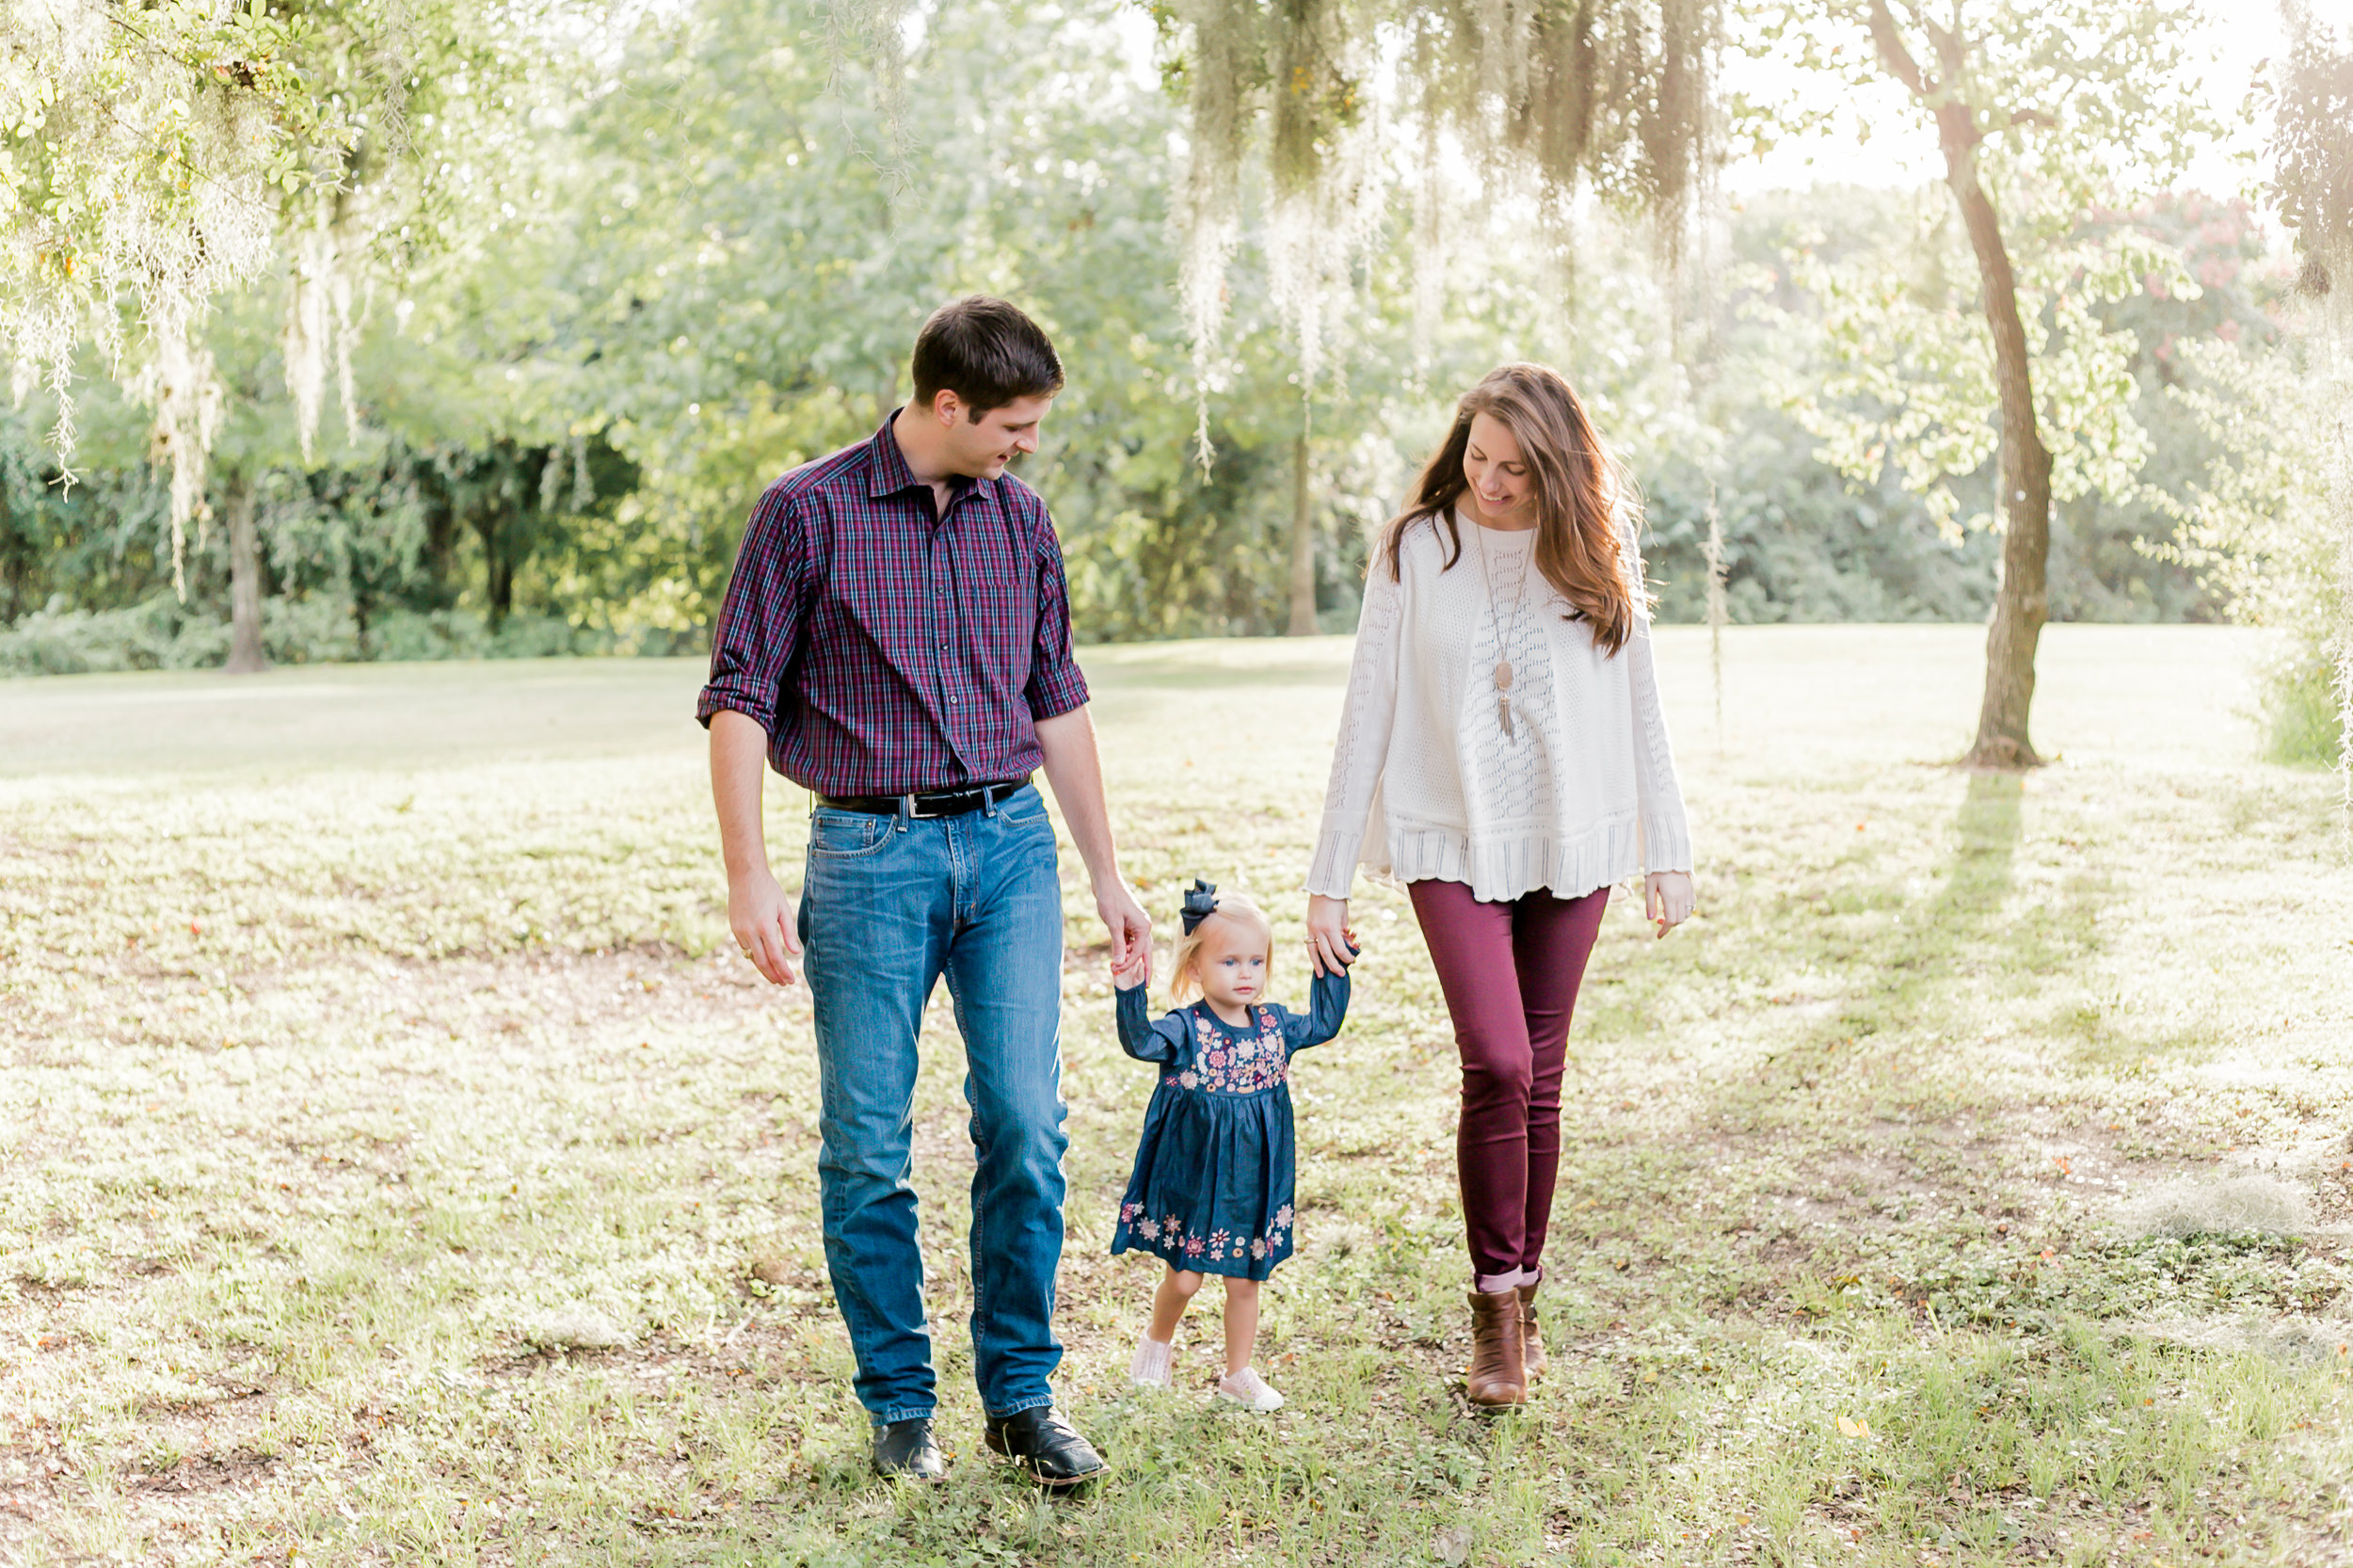 Hoelscher_FamilySession2018_ScreenRes-36.jpg